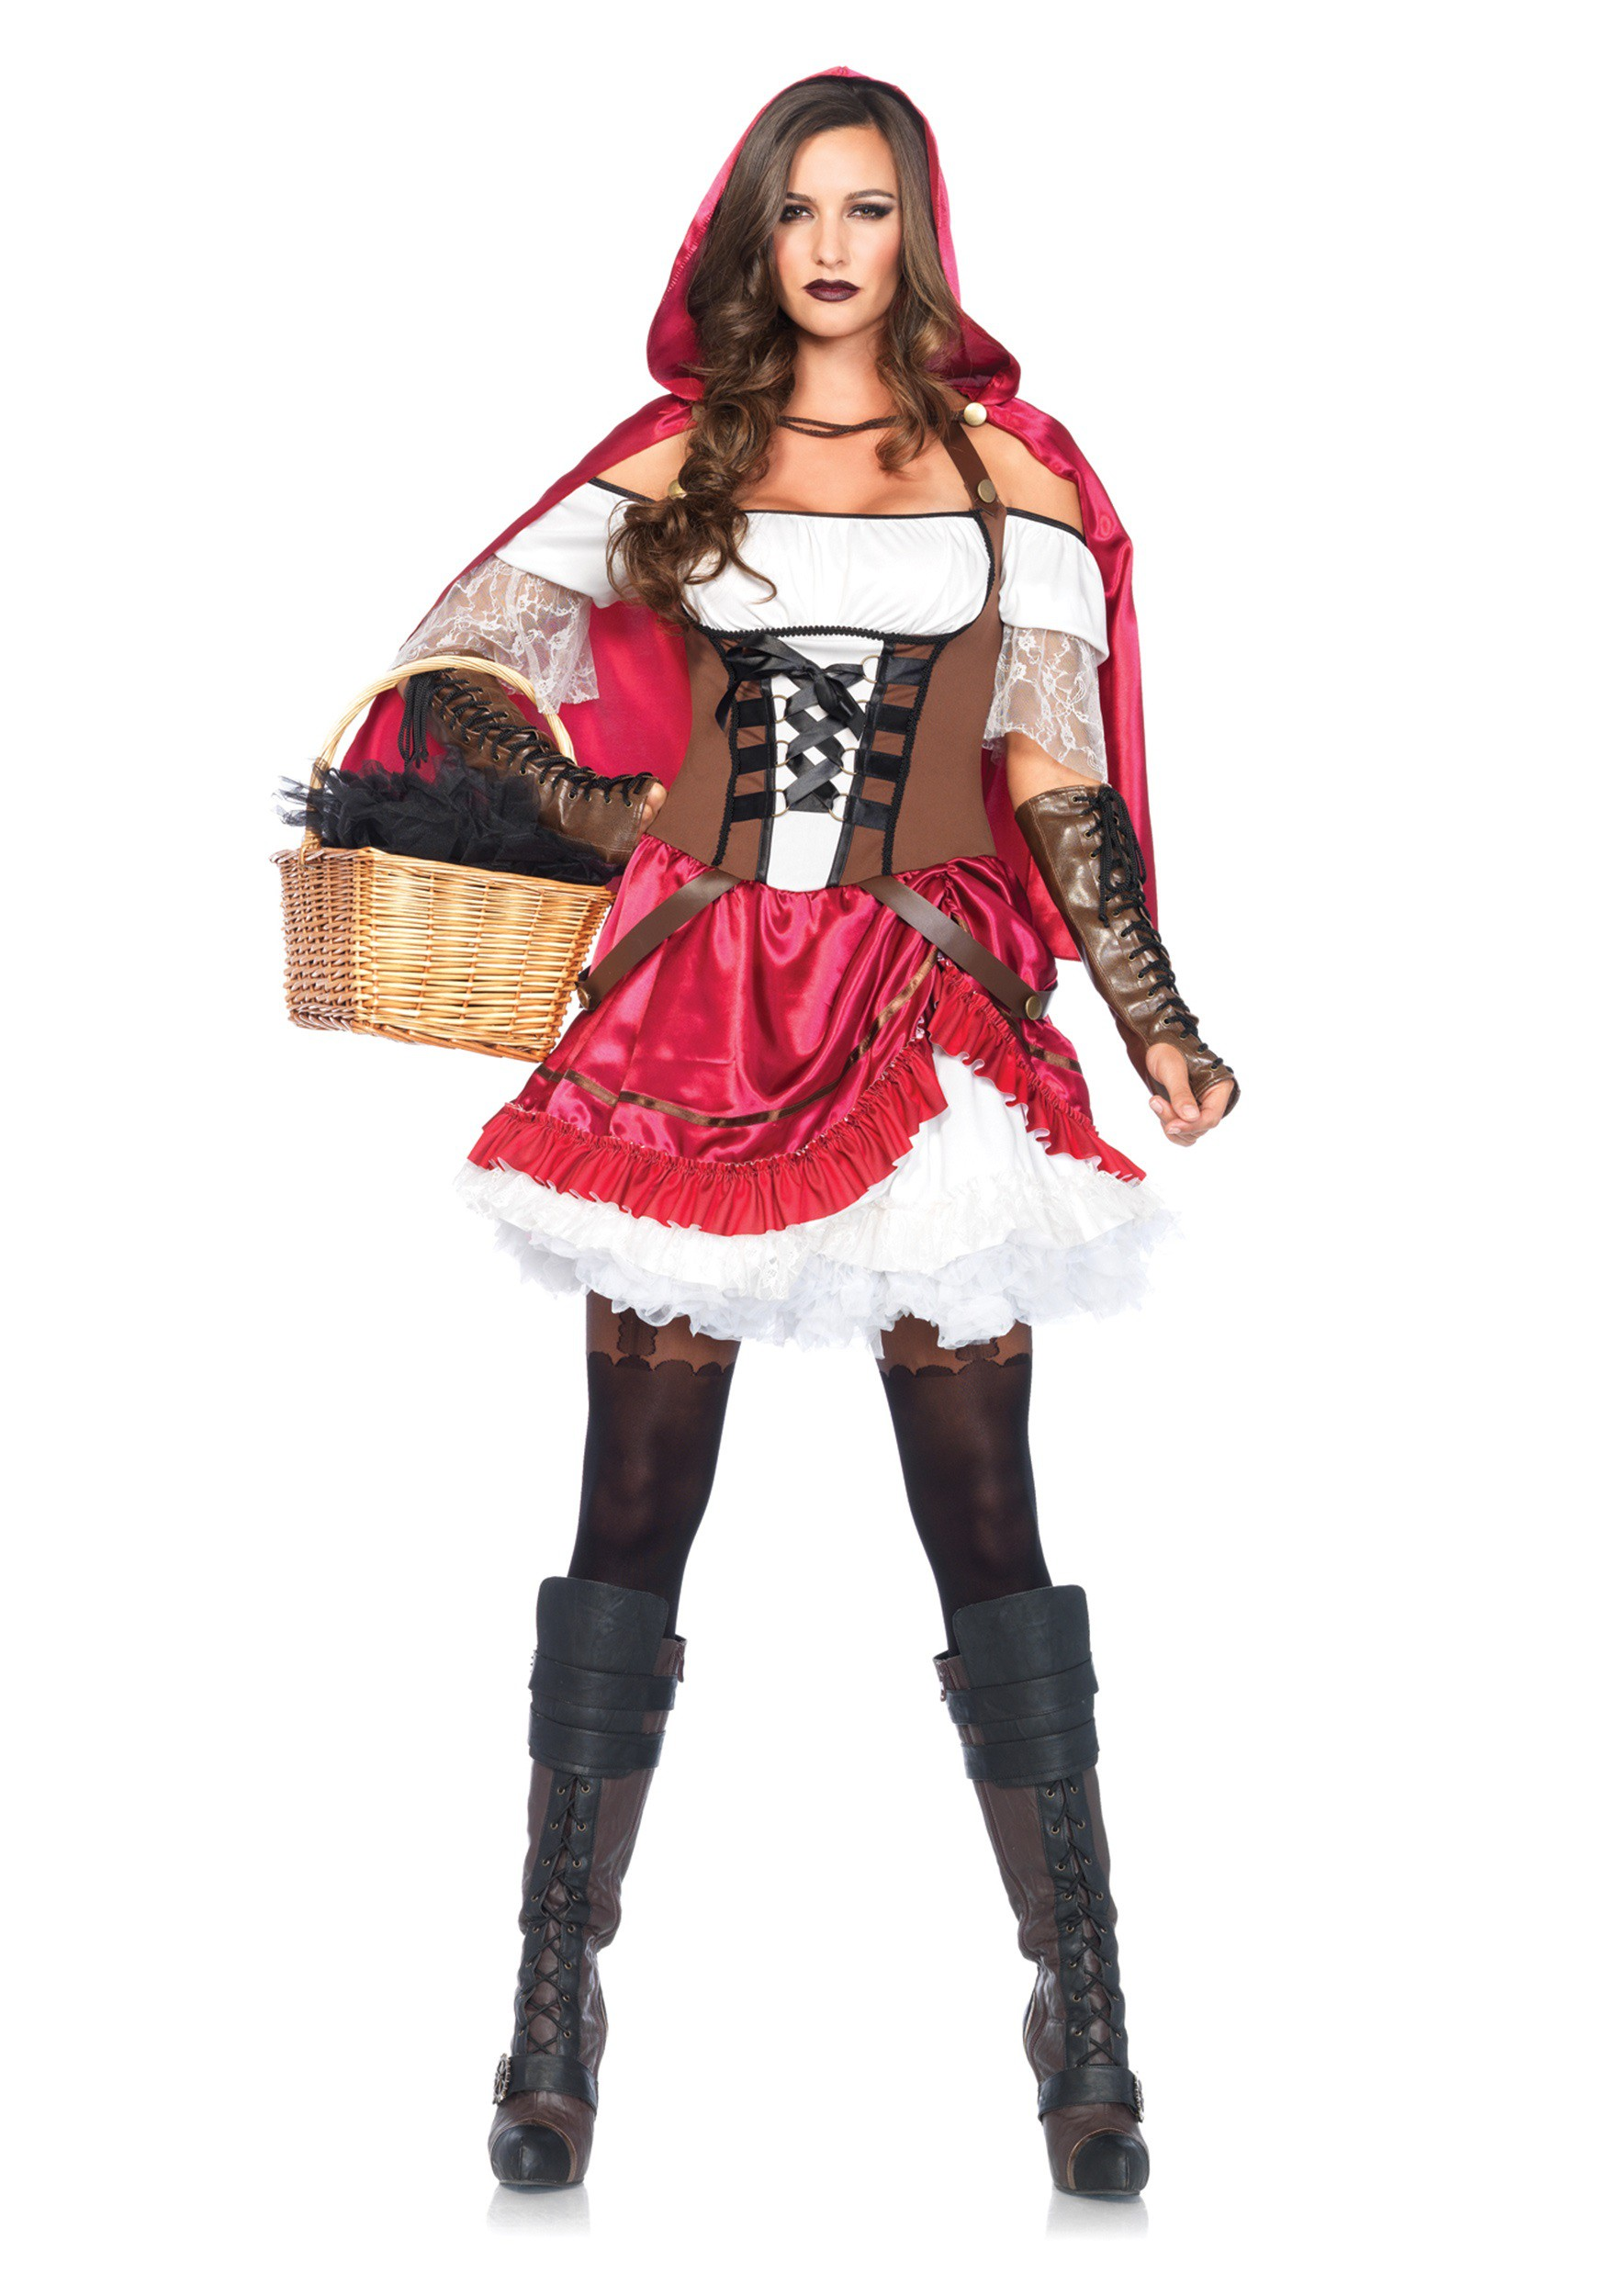 Women's Rebel Red Riding Hood Costume